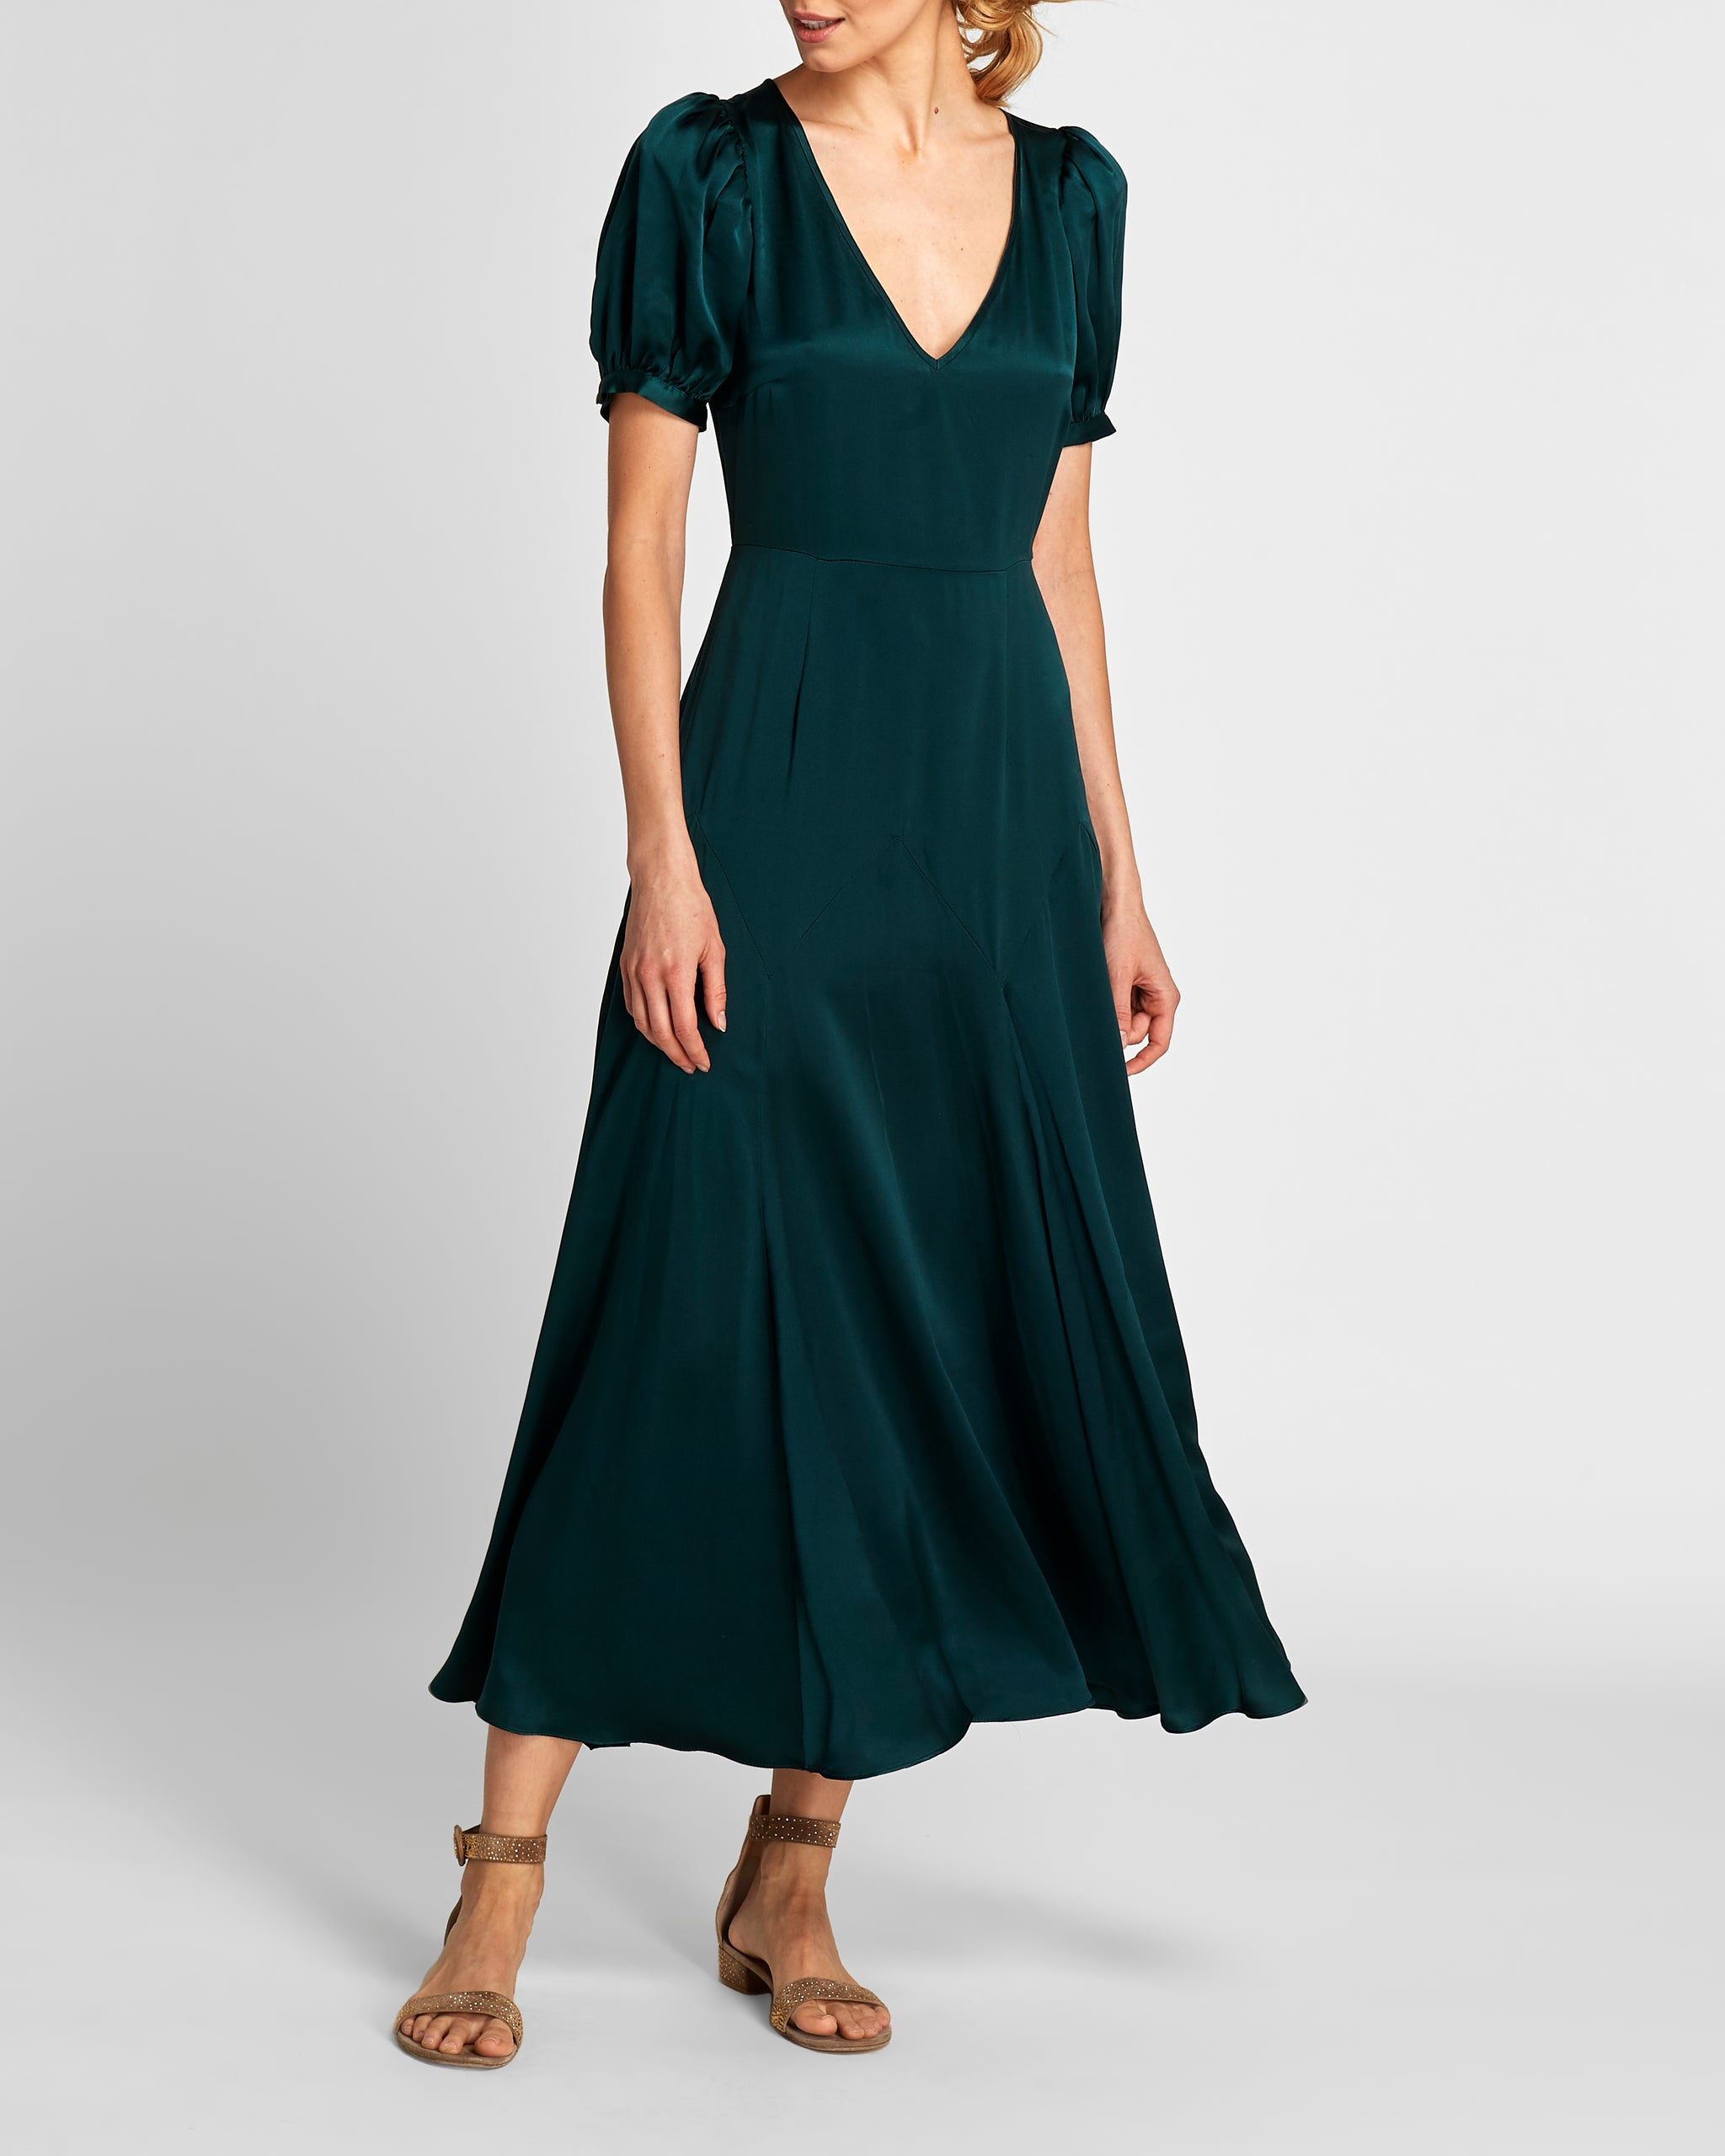 The Daisy Dress | Marine Green